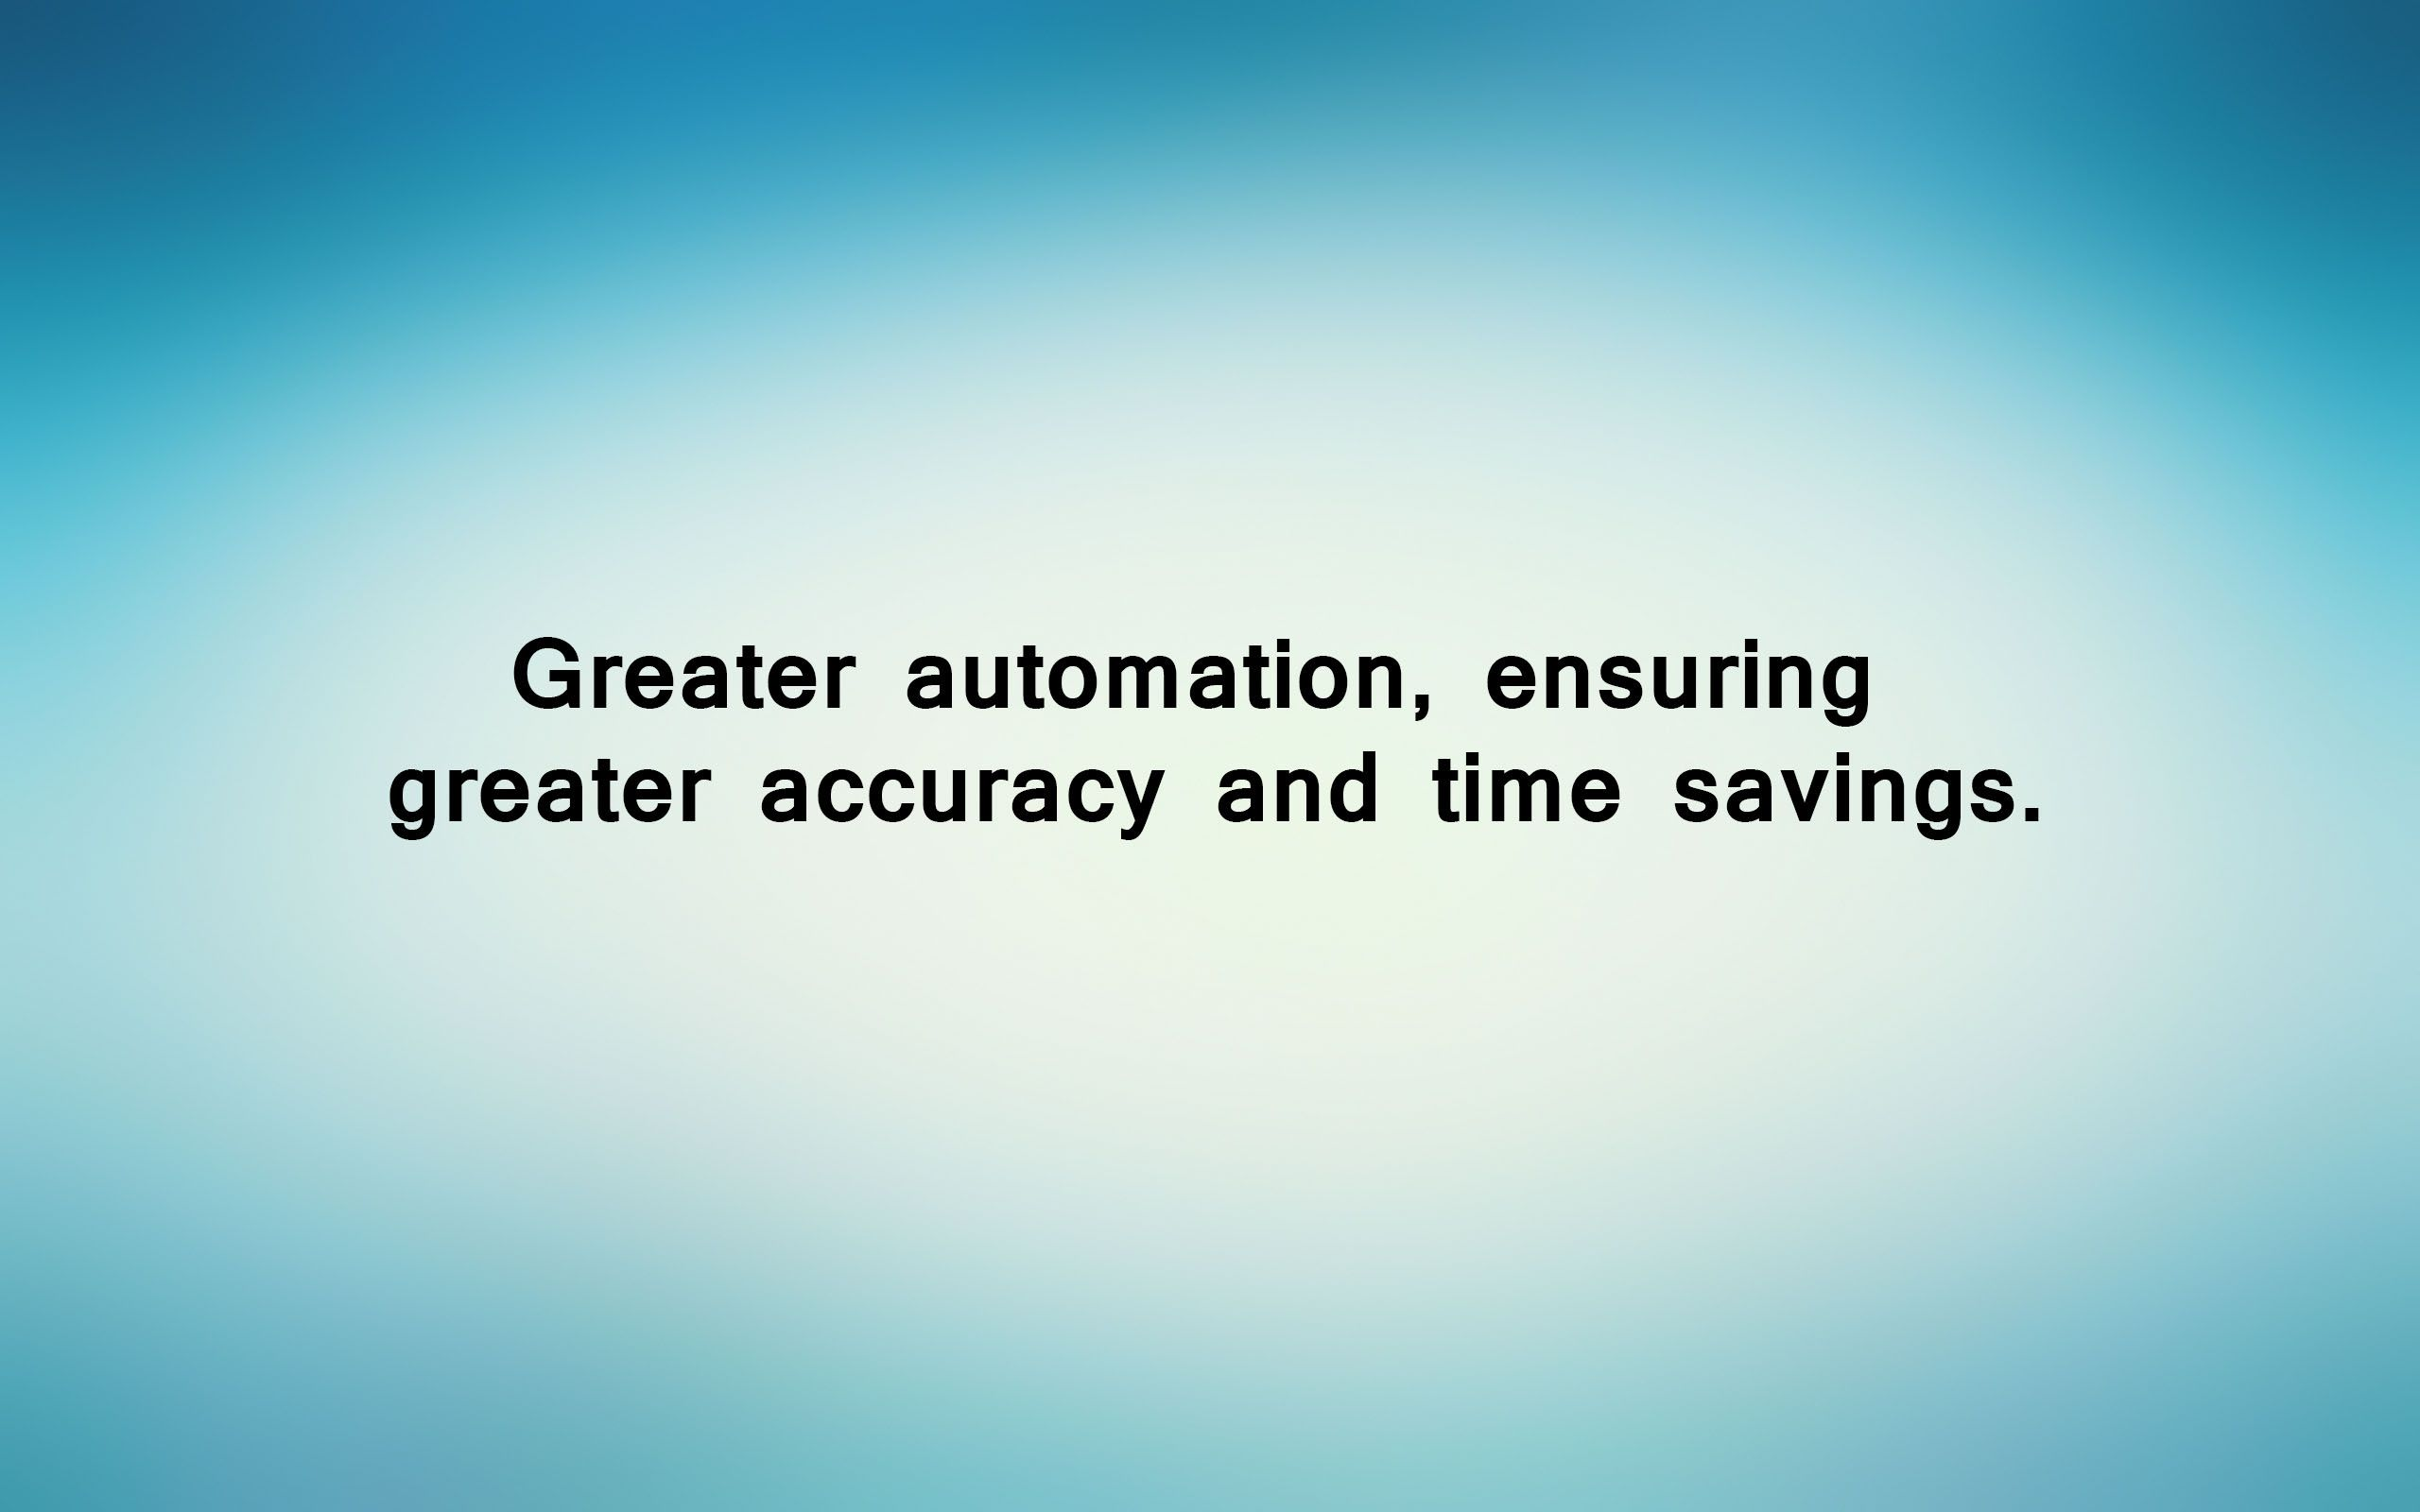 Greater automation, ensuring greater accuracy and time savings